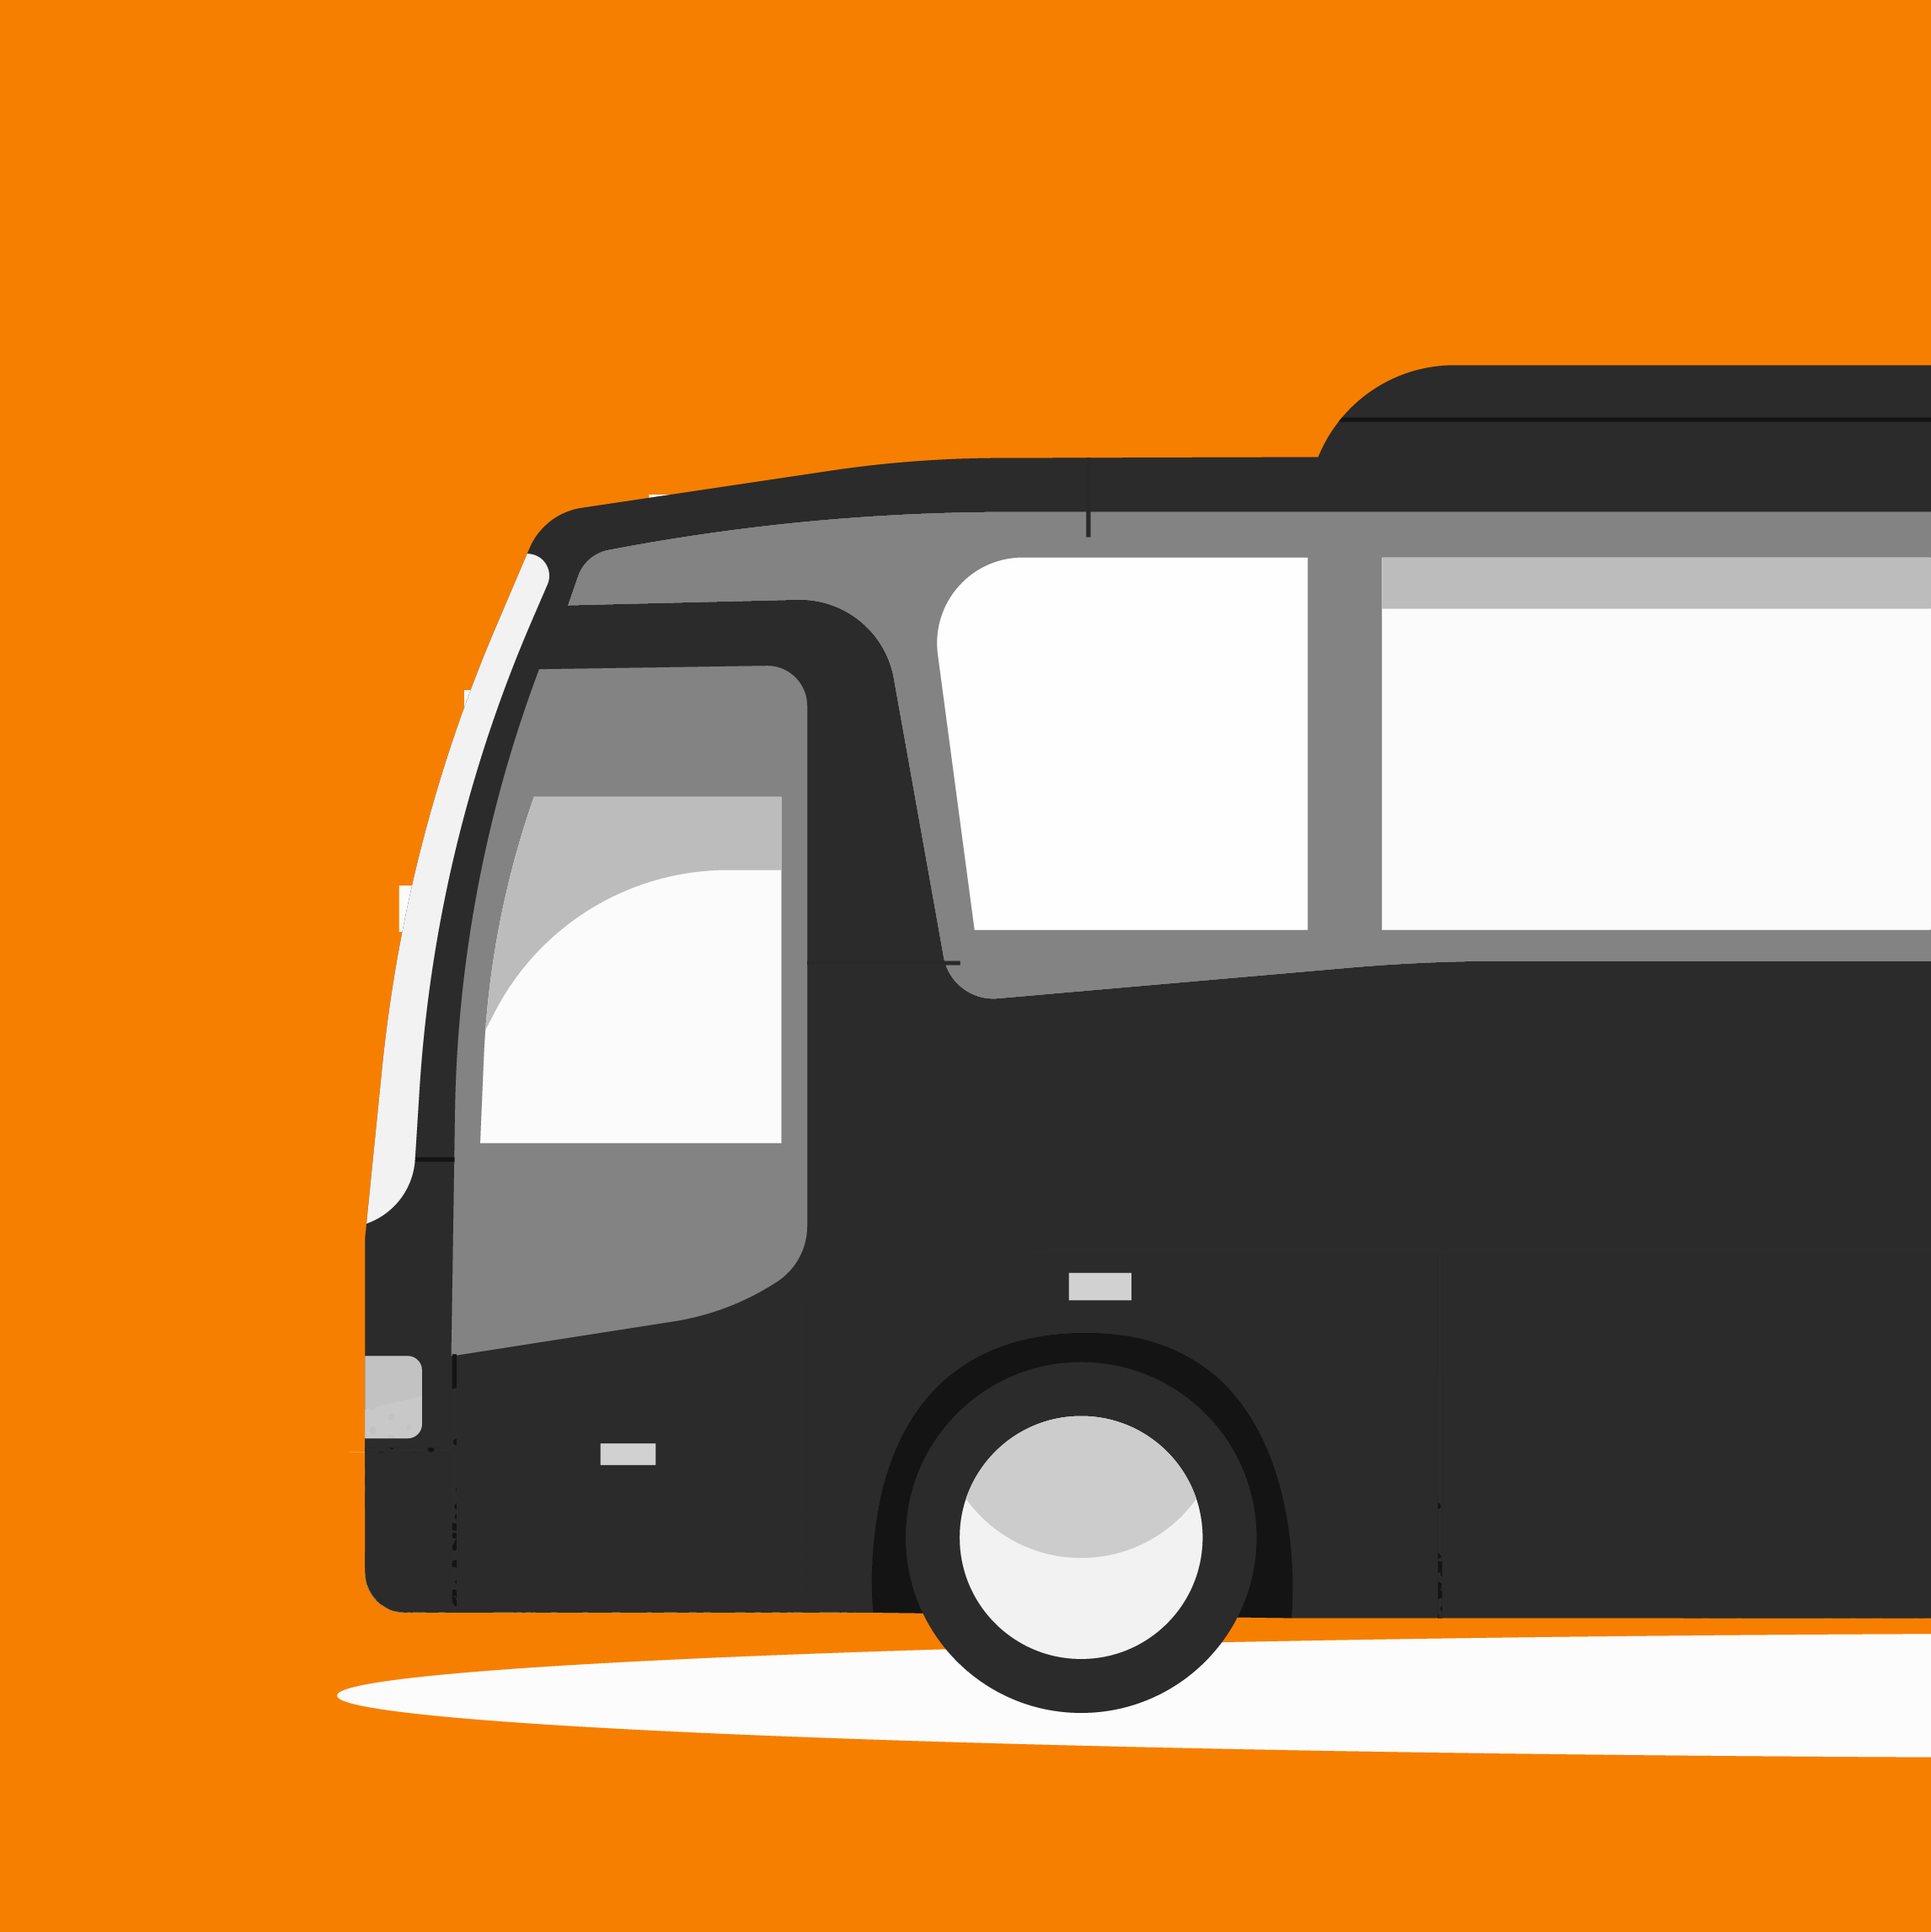 An illustration of a bus